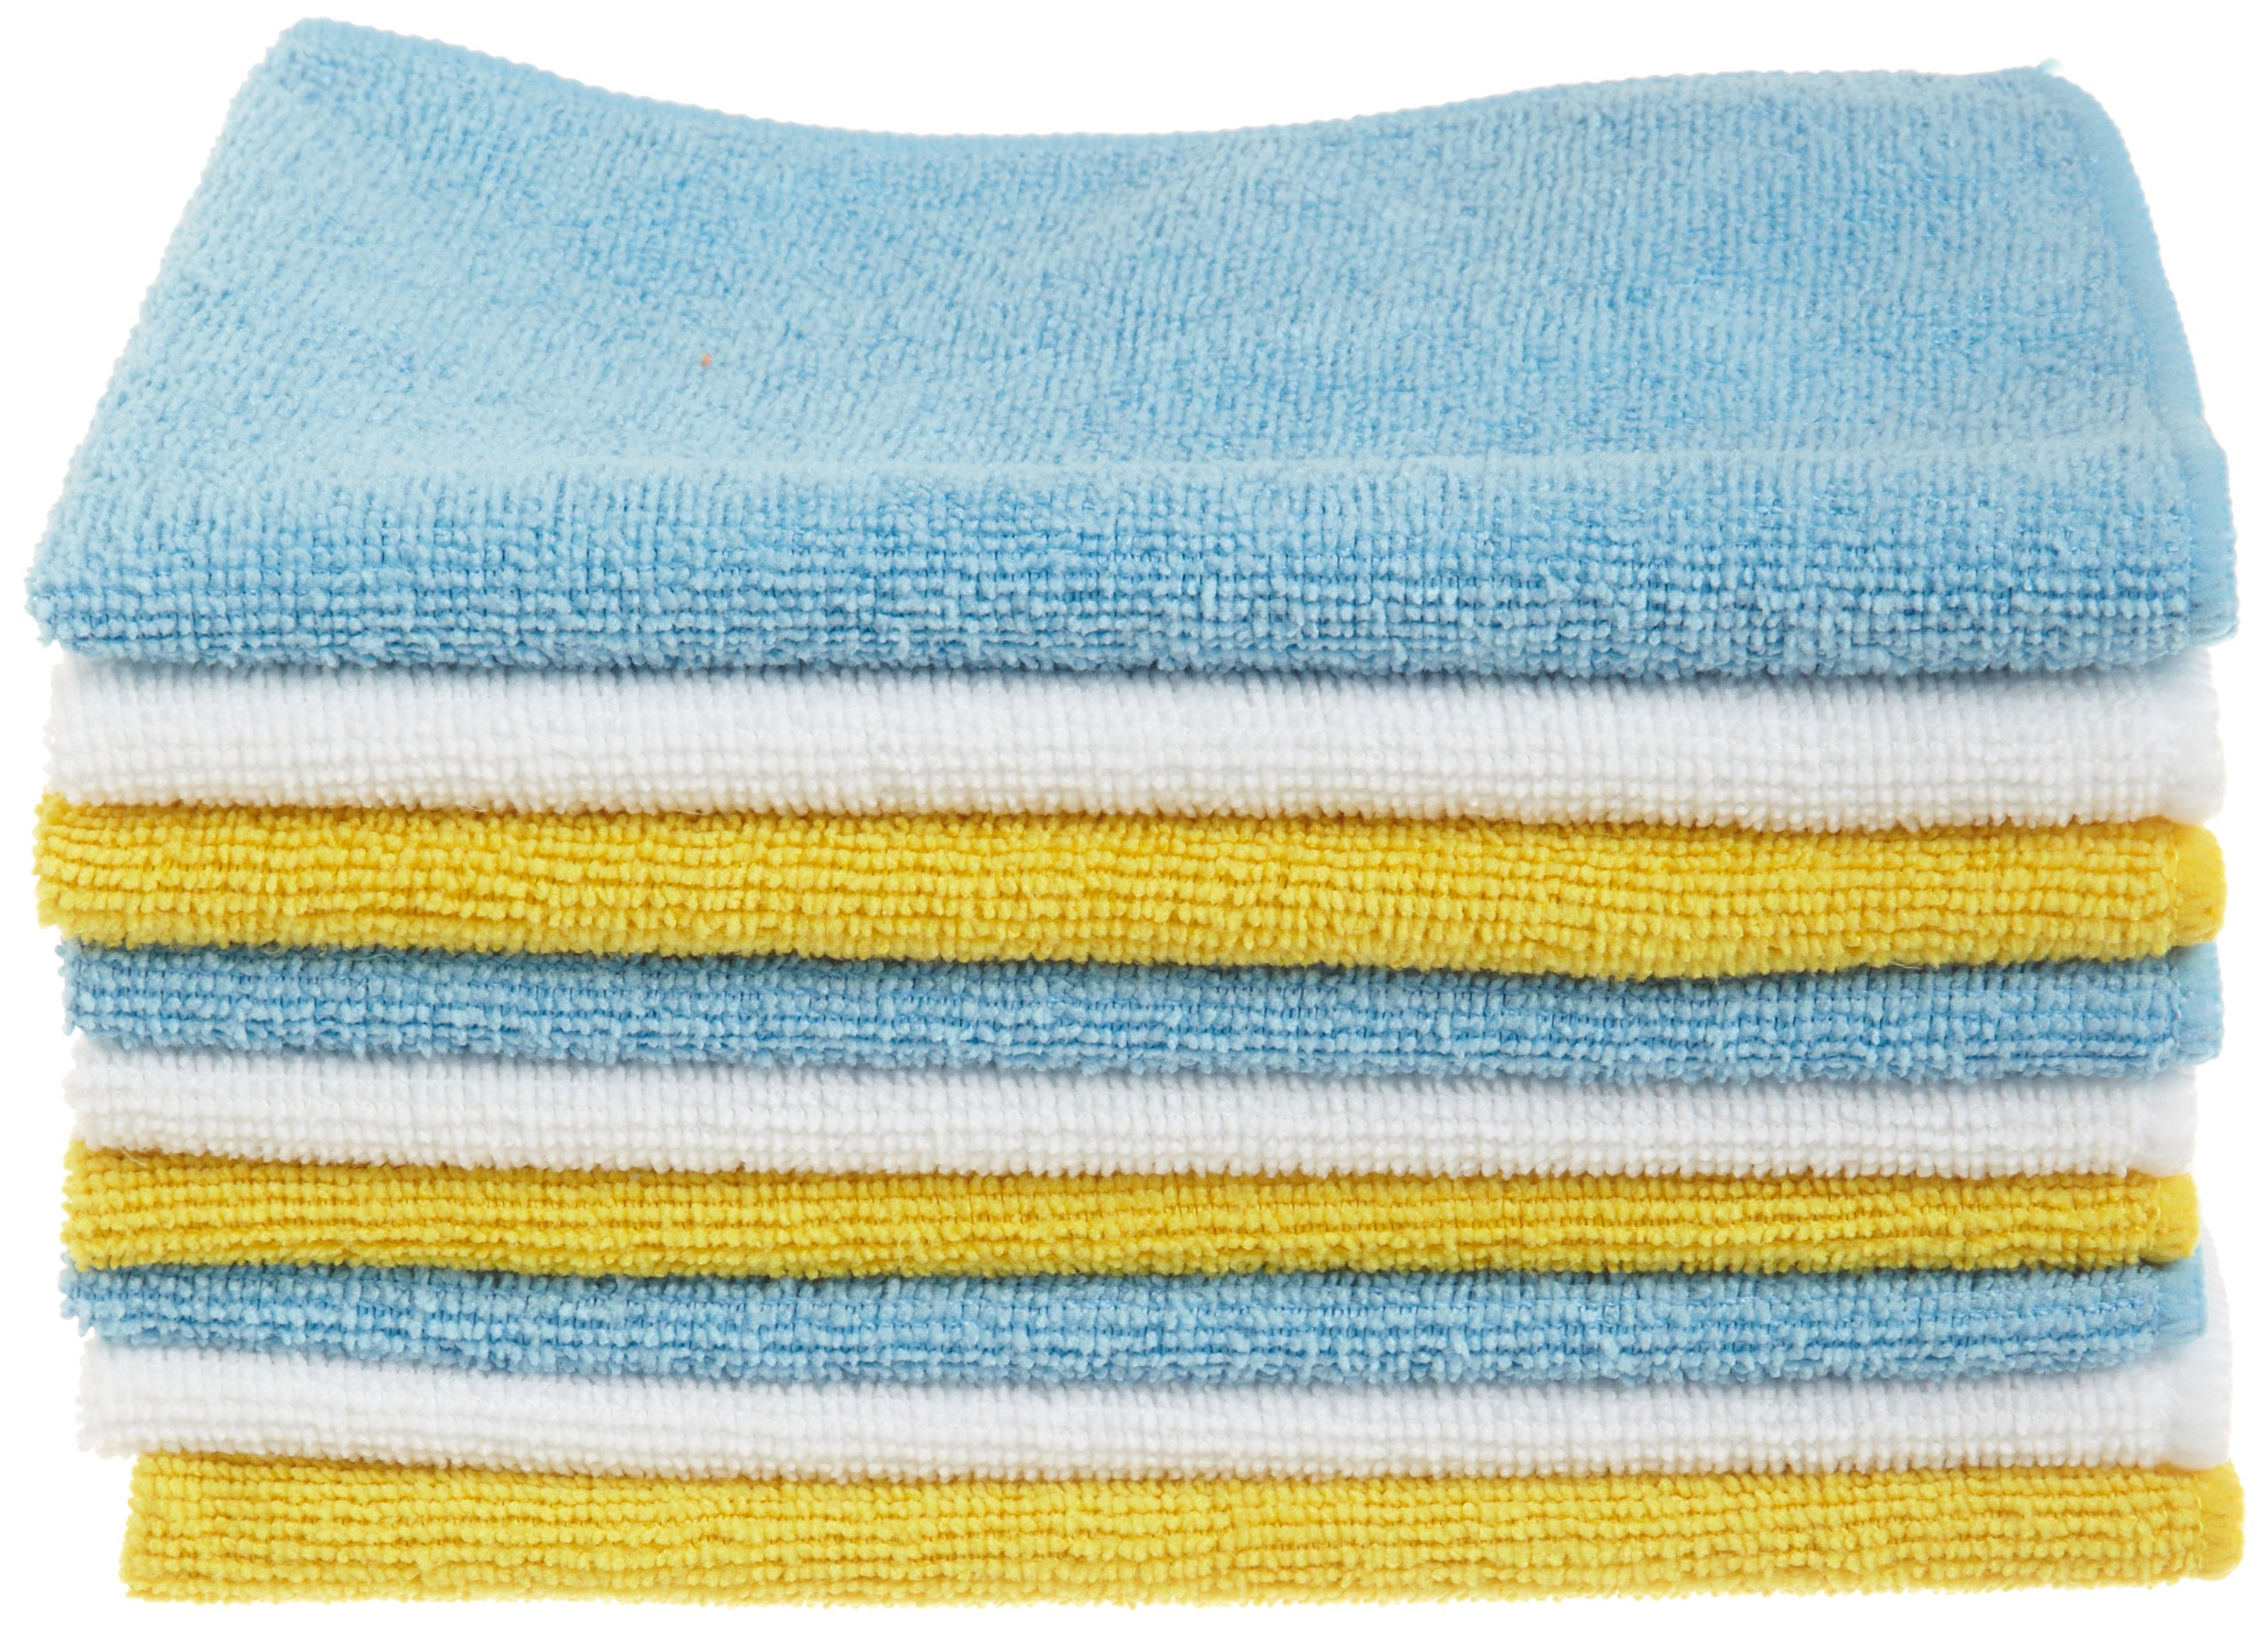 AmazonBasics Microfiber Cleaning Cloth - 24-Pack by AmazonBasics